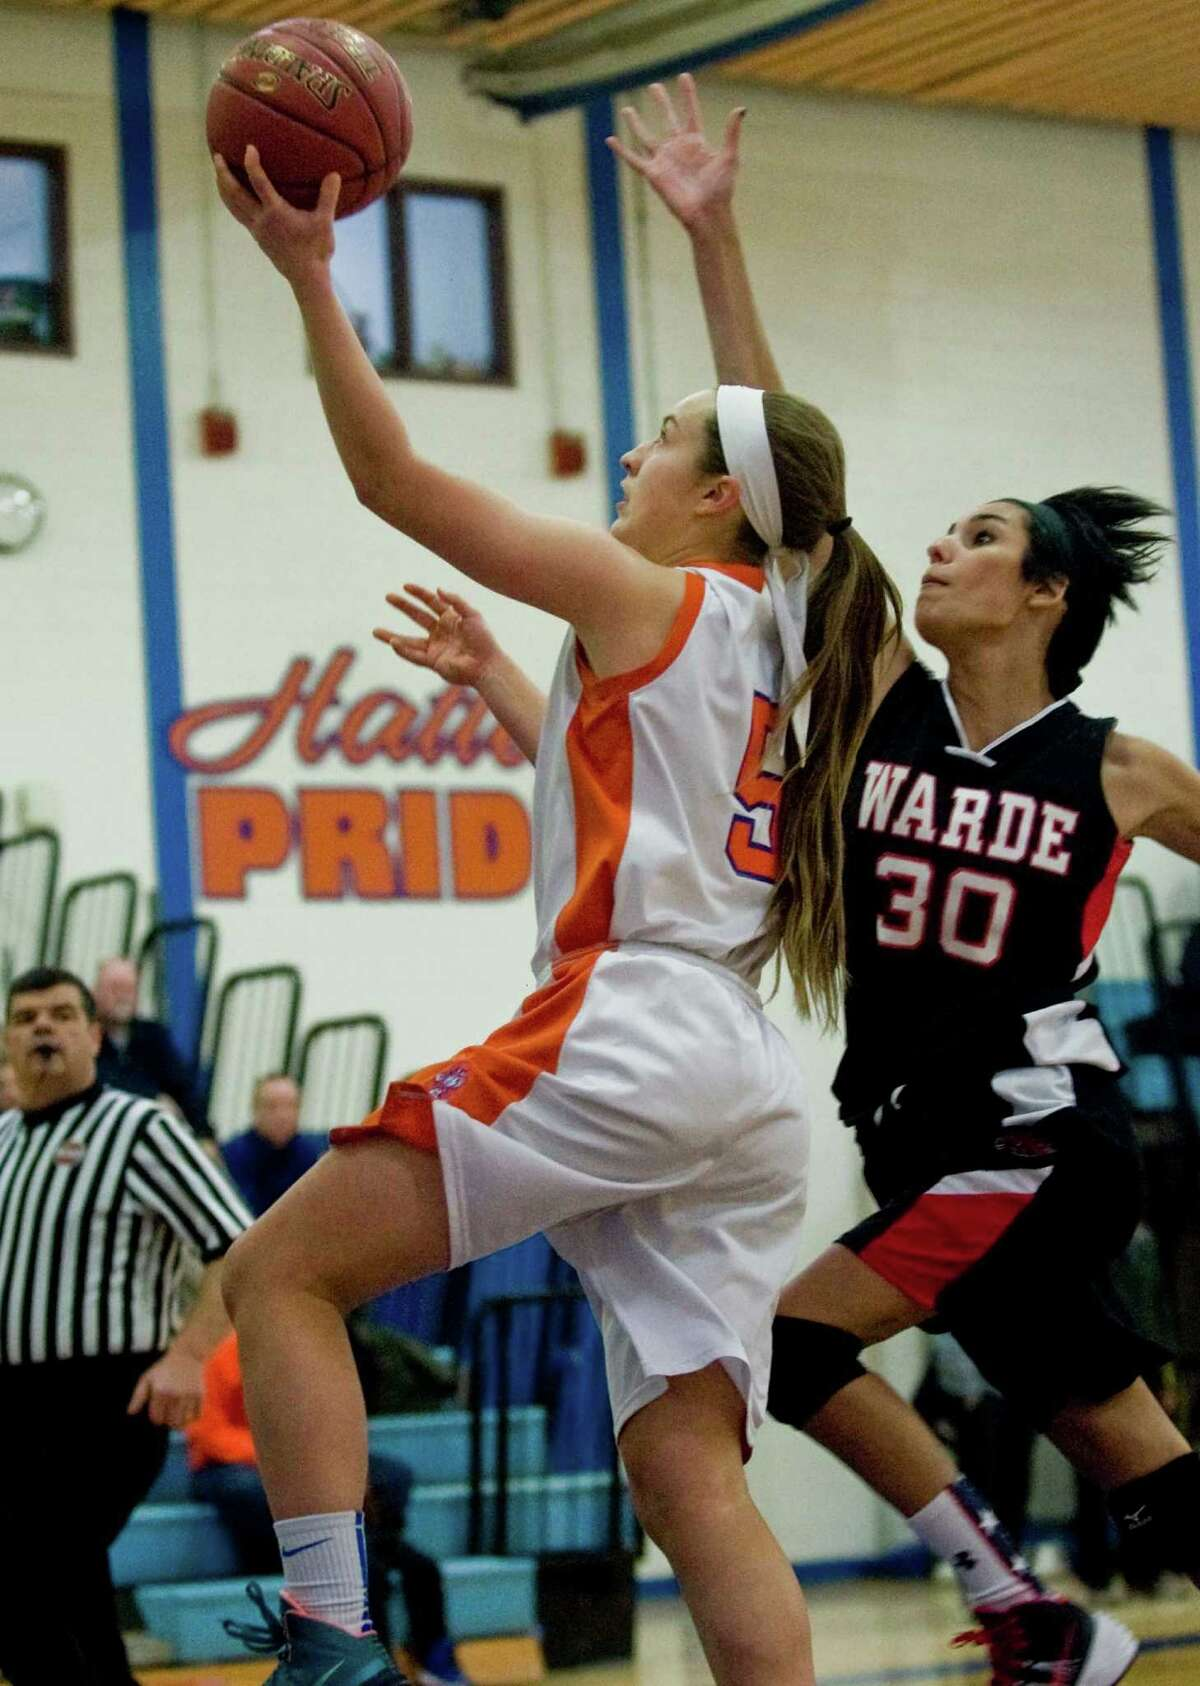 Danbury High School's Rachel Gartner goes up for the basket in a game against Fairfield Warde High School, played at Danbury. Friday, Jan. 24, 2014